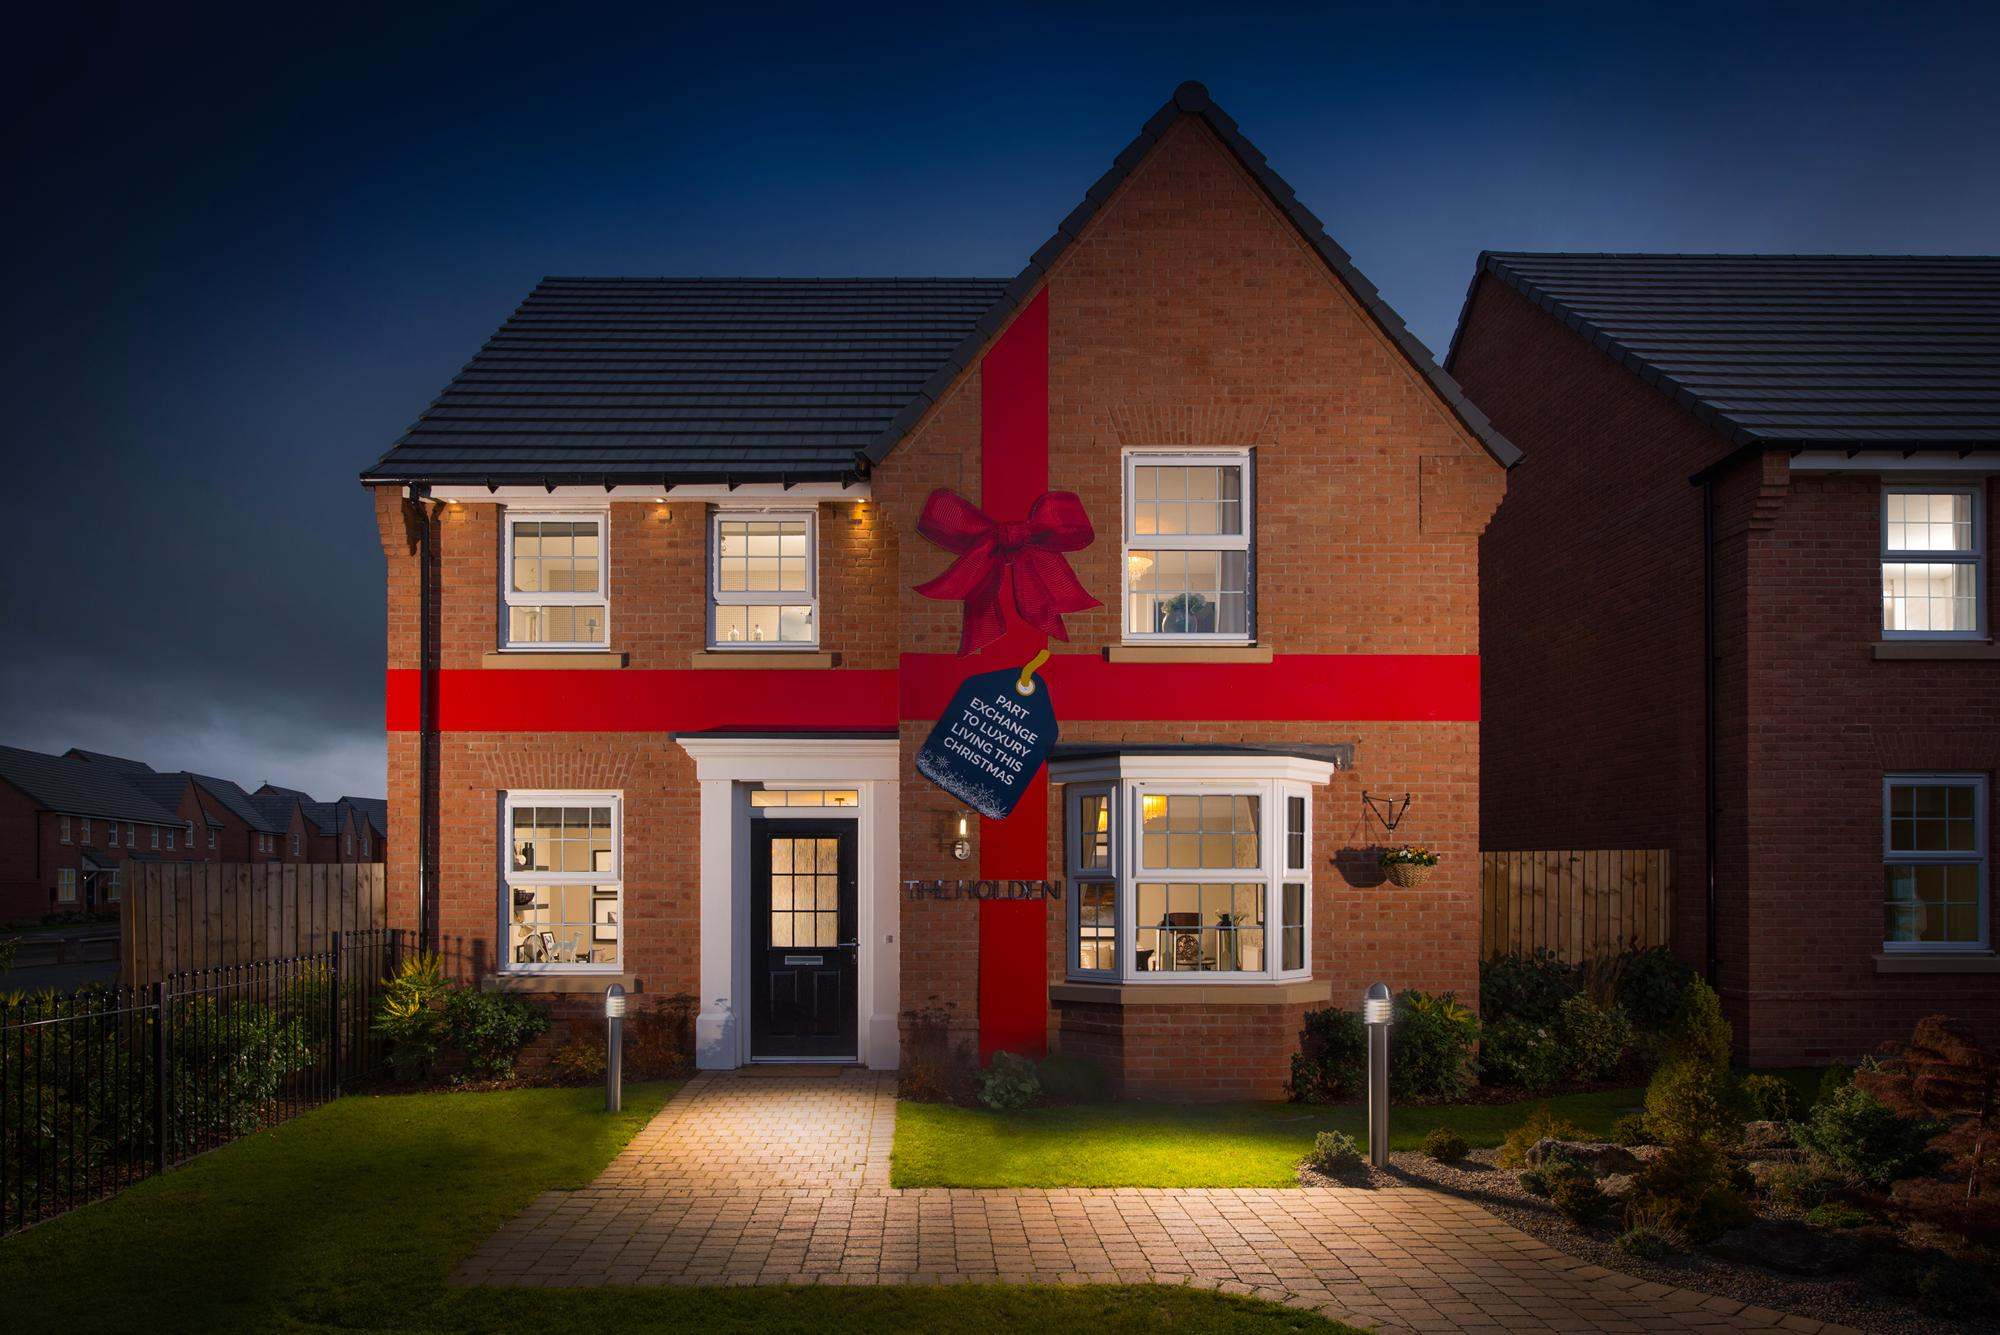 New Build Homes in Knaresborough